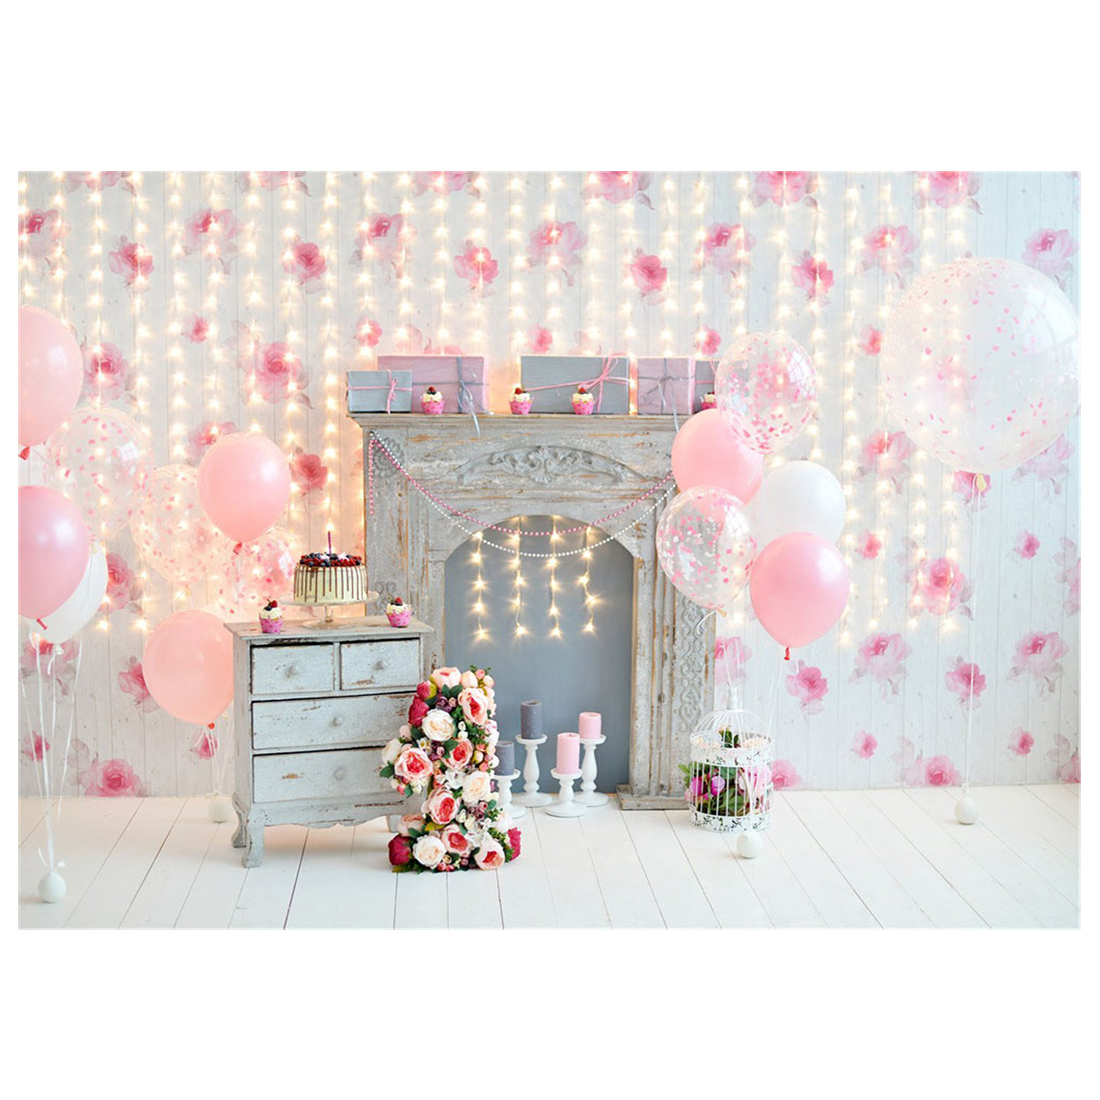 7x5ft 2.1x1.5m Pink Background For Birthday Photography